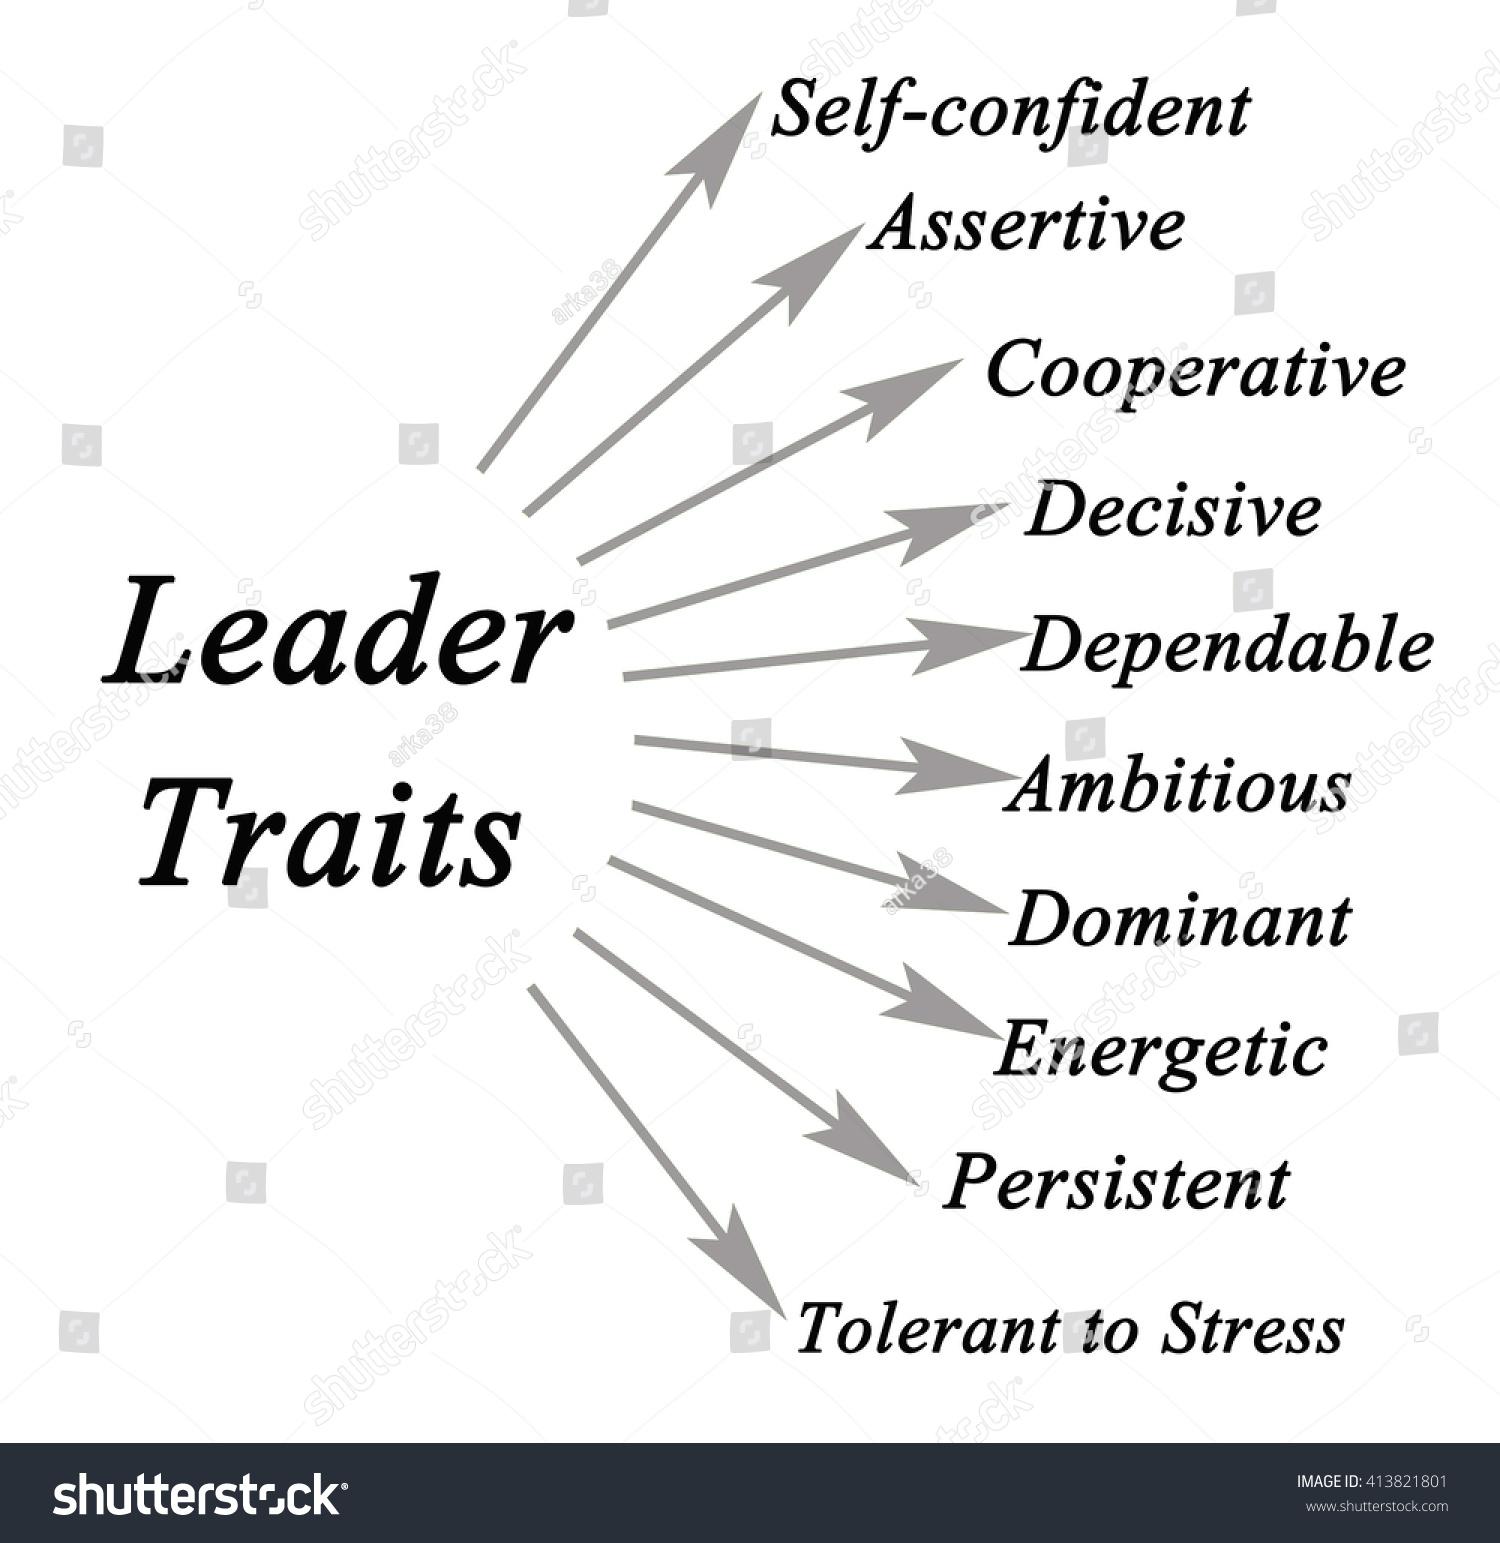 one of characteristics of clinical leader How will clinical leadership skills influence your practice and career development   rural and remote practice is one of the most challenging in terms of  are  likely to have quite different characteristics and dynamics to urban-based teams.